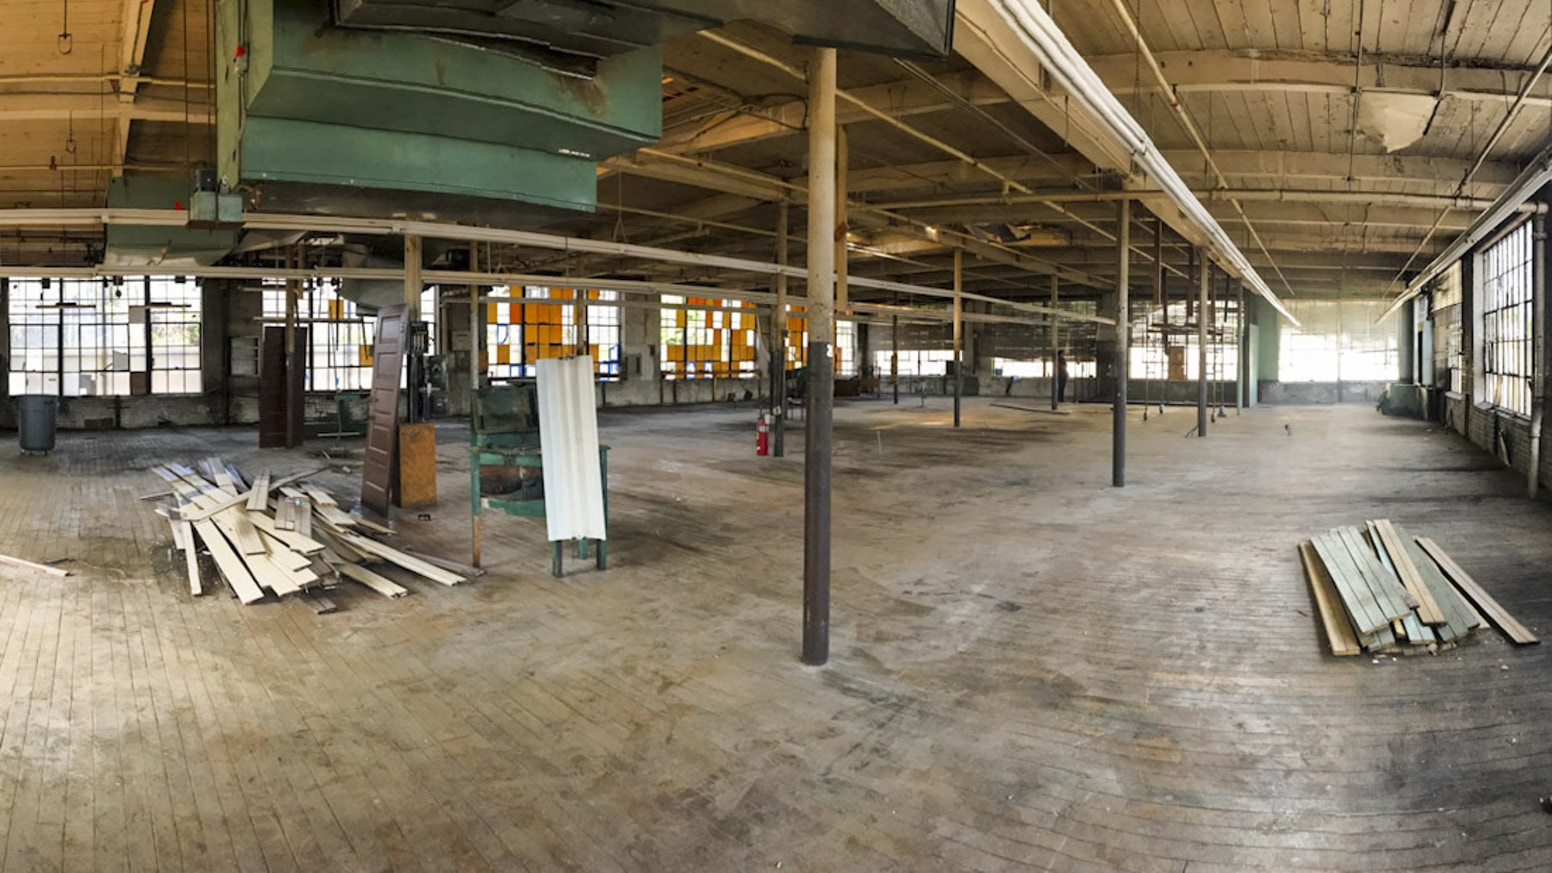 Development of a Providence-based Food Hall in the Smith Hill neighborhood